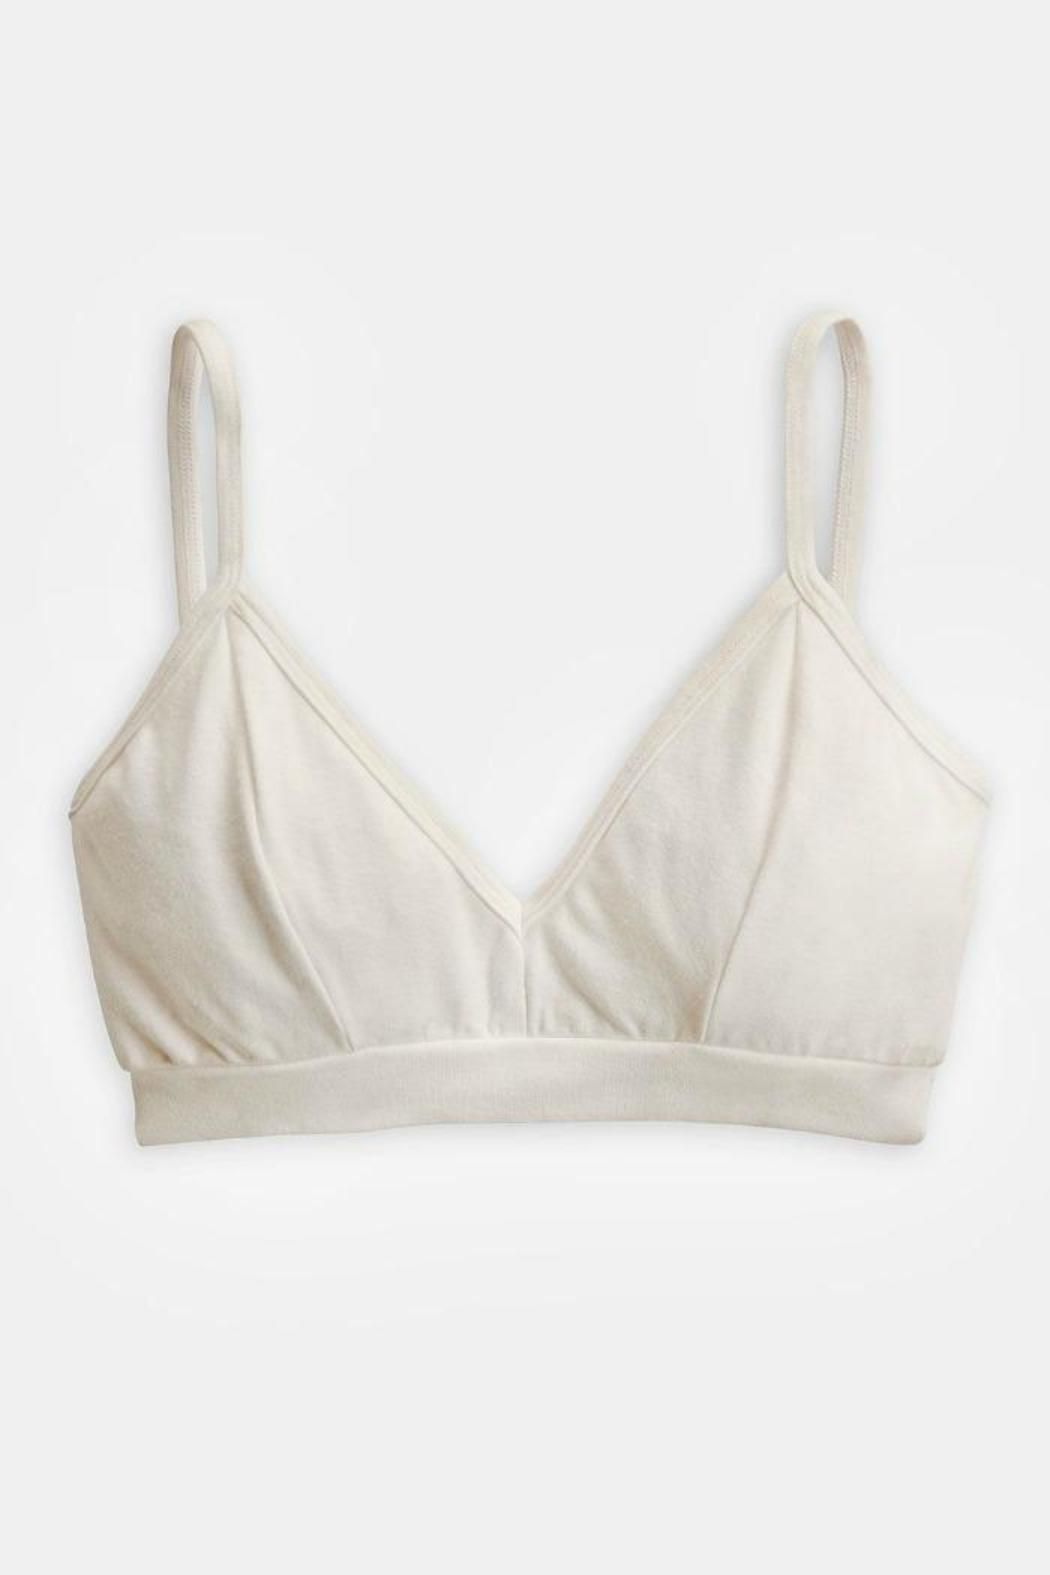 b160d041b6 Groceries Organic Cotton Bralette in Milk Cream. Wear this comfy organic  cotton bralette under all your shirts and dresses this Spring and Summer!